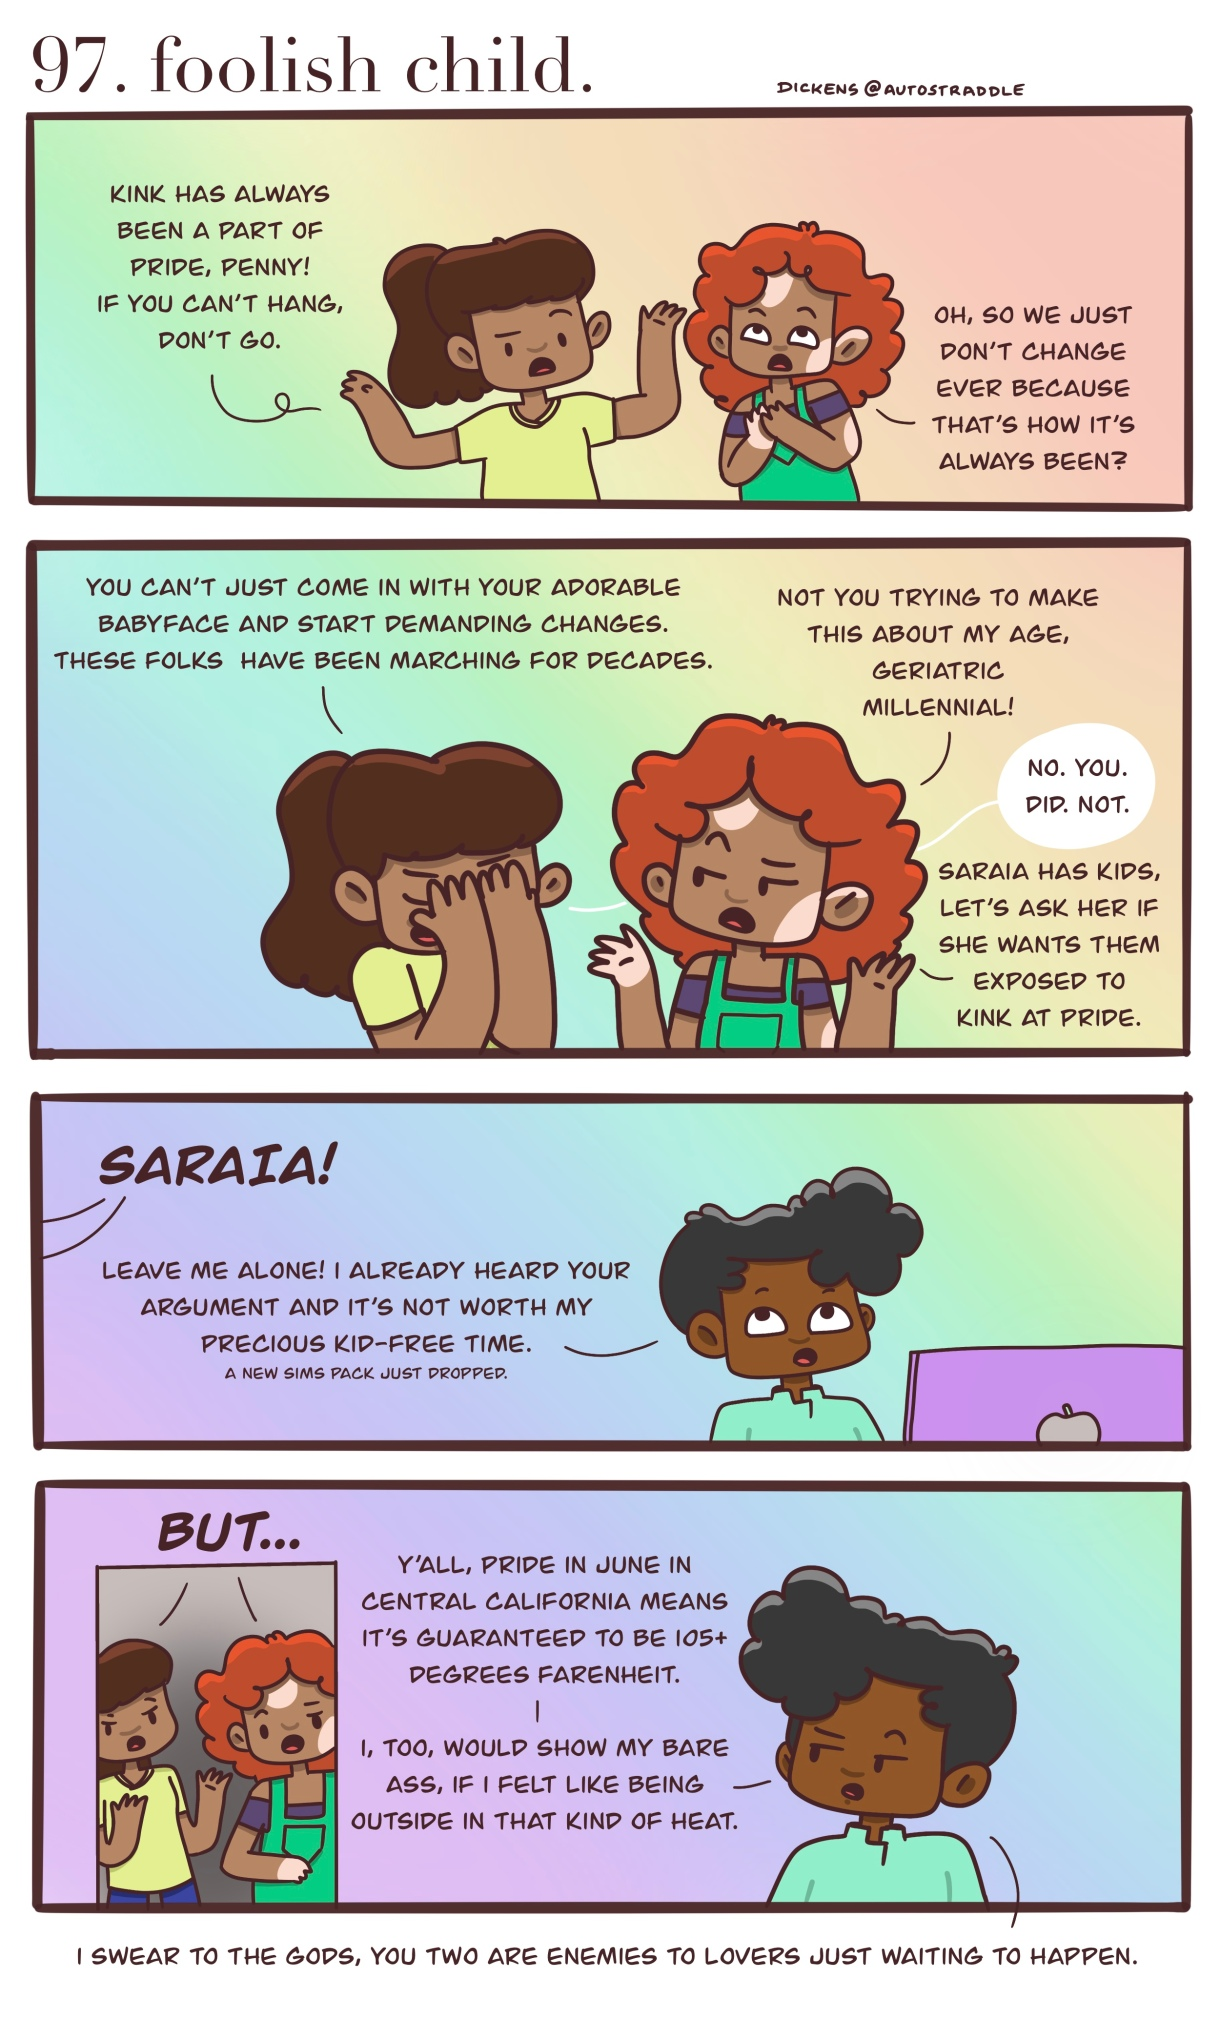 """In a four panel comic, Two friends talk against a rainbow background: """"Kink has always been a part of Pride, Penny! If you can't hang, don't go."""" / """"Oh, so we just don't change ever because that's how it's always been?""""They ask Dickens to chime in, who adds: """" """"Pride in June in central California means it's guaranteed to be 105+ degrees Fahrenheit. I, too, would show my bare ass, if I felt like being outside in that kind of heat."""""""